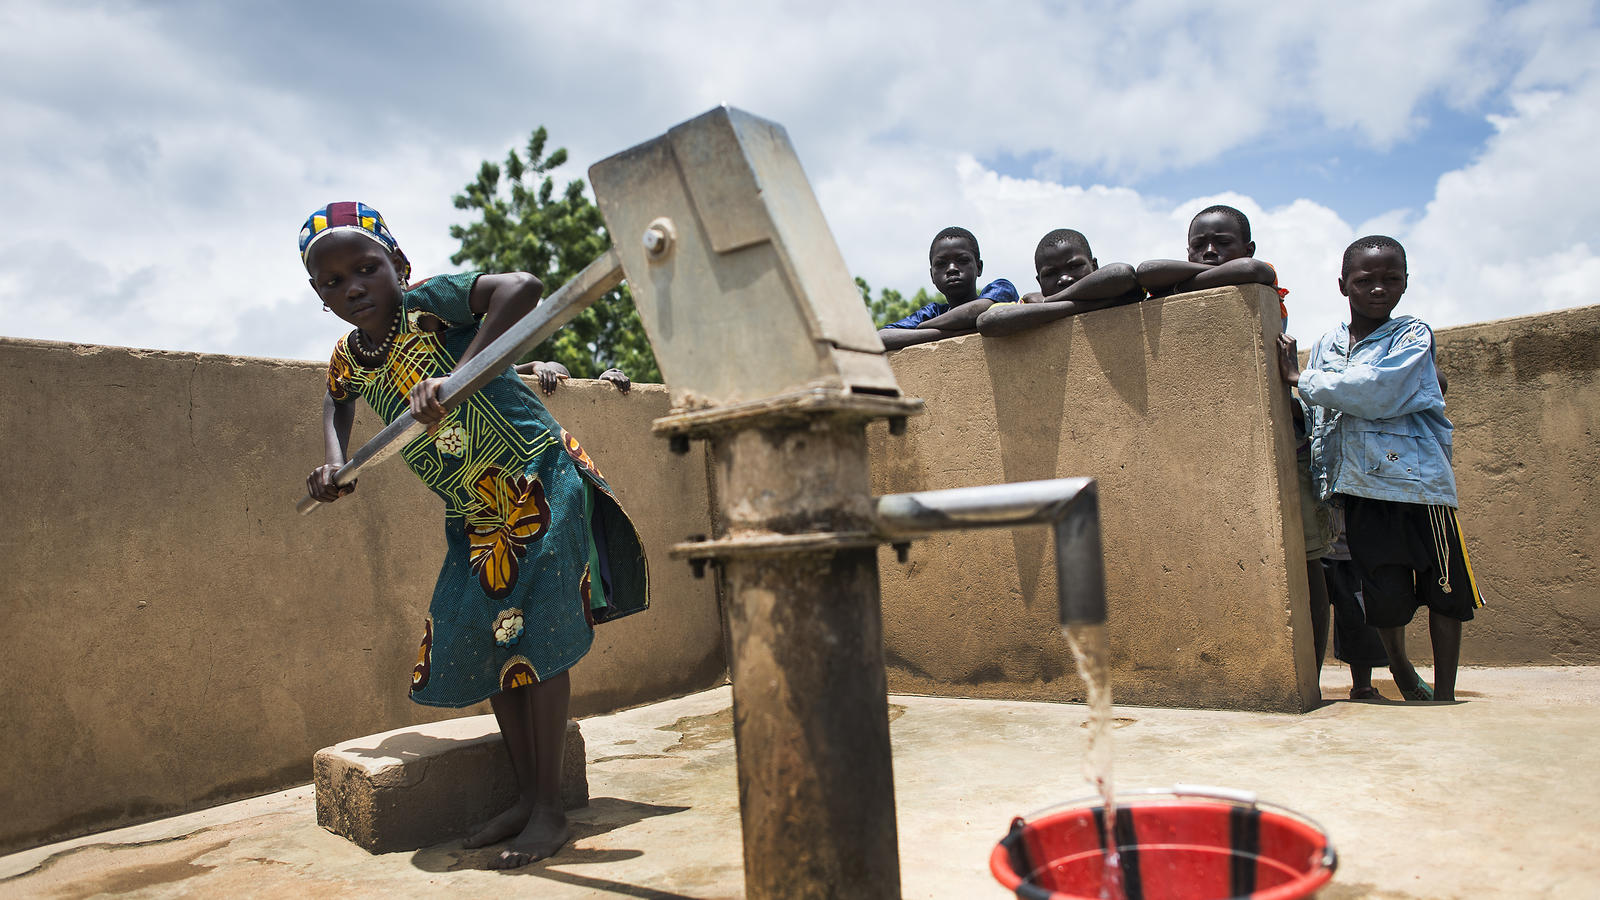 A woman collects water from a pump near her village in Mali.